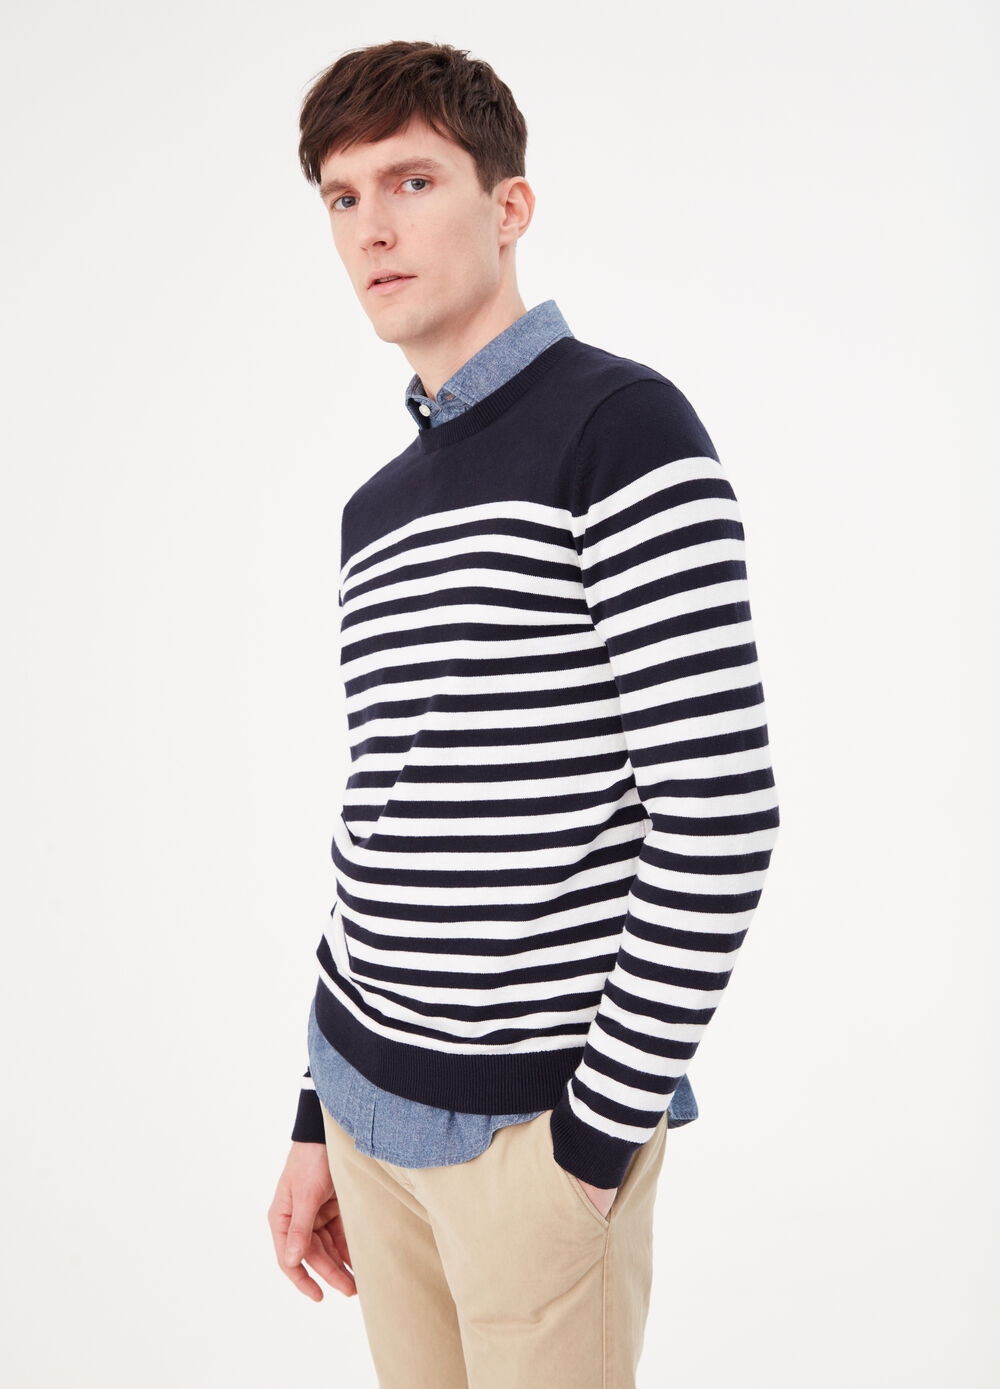 Knitted pullover in 100% cotton with striped pattern